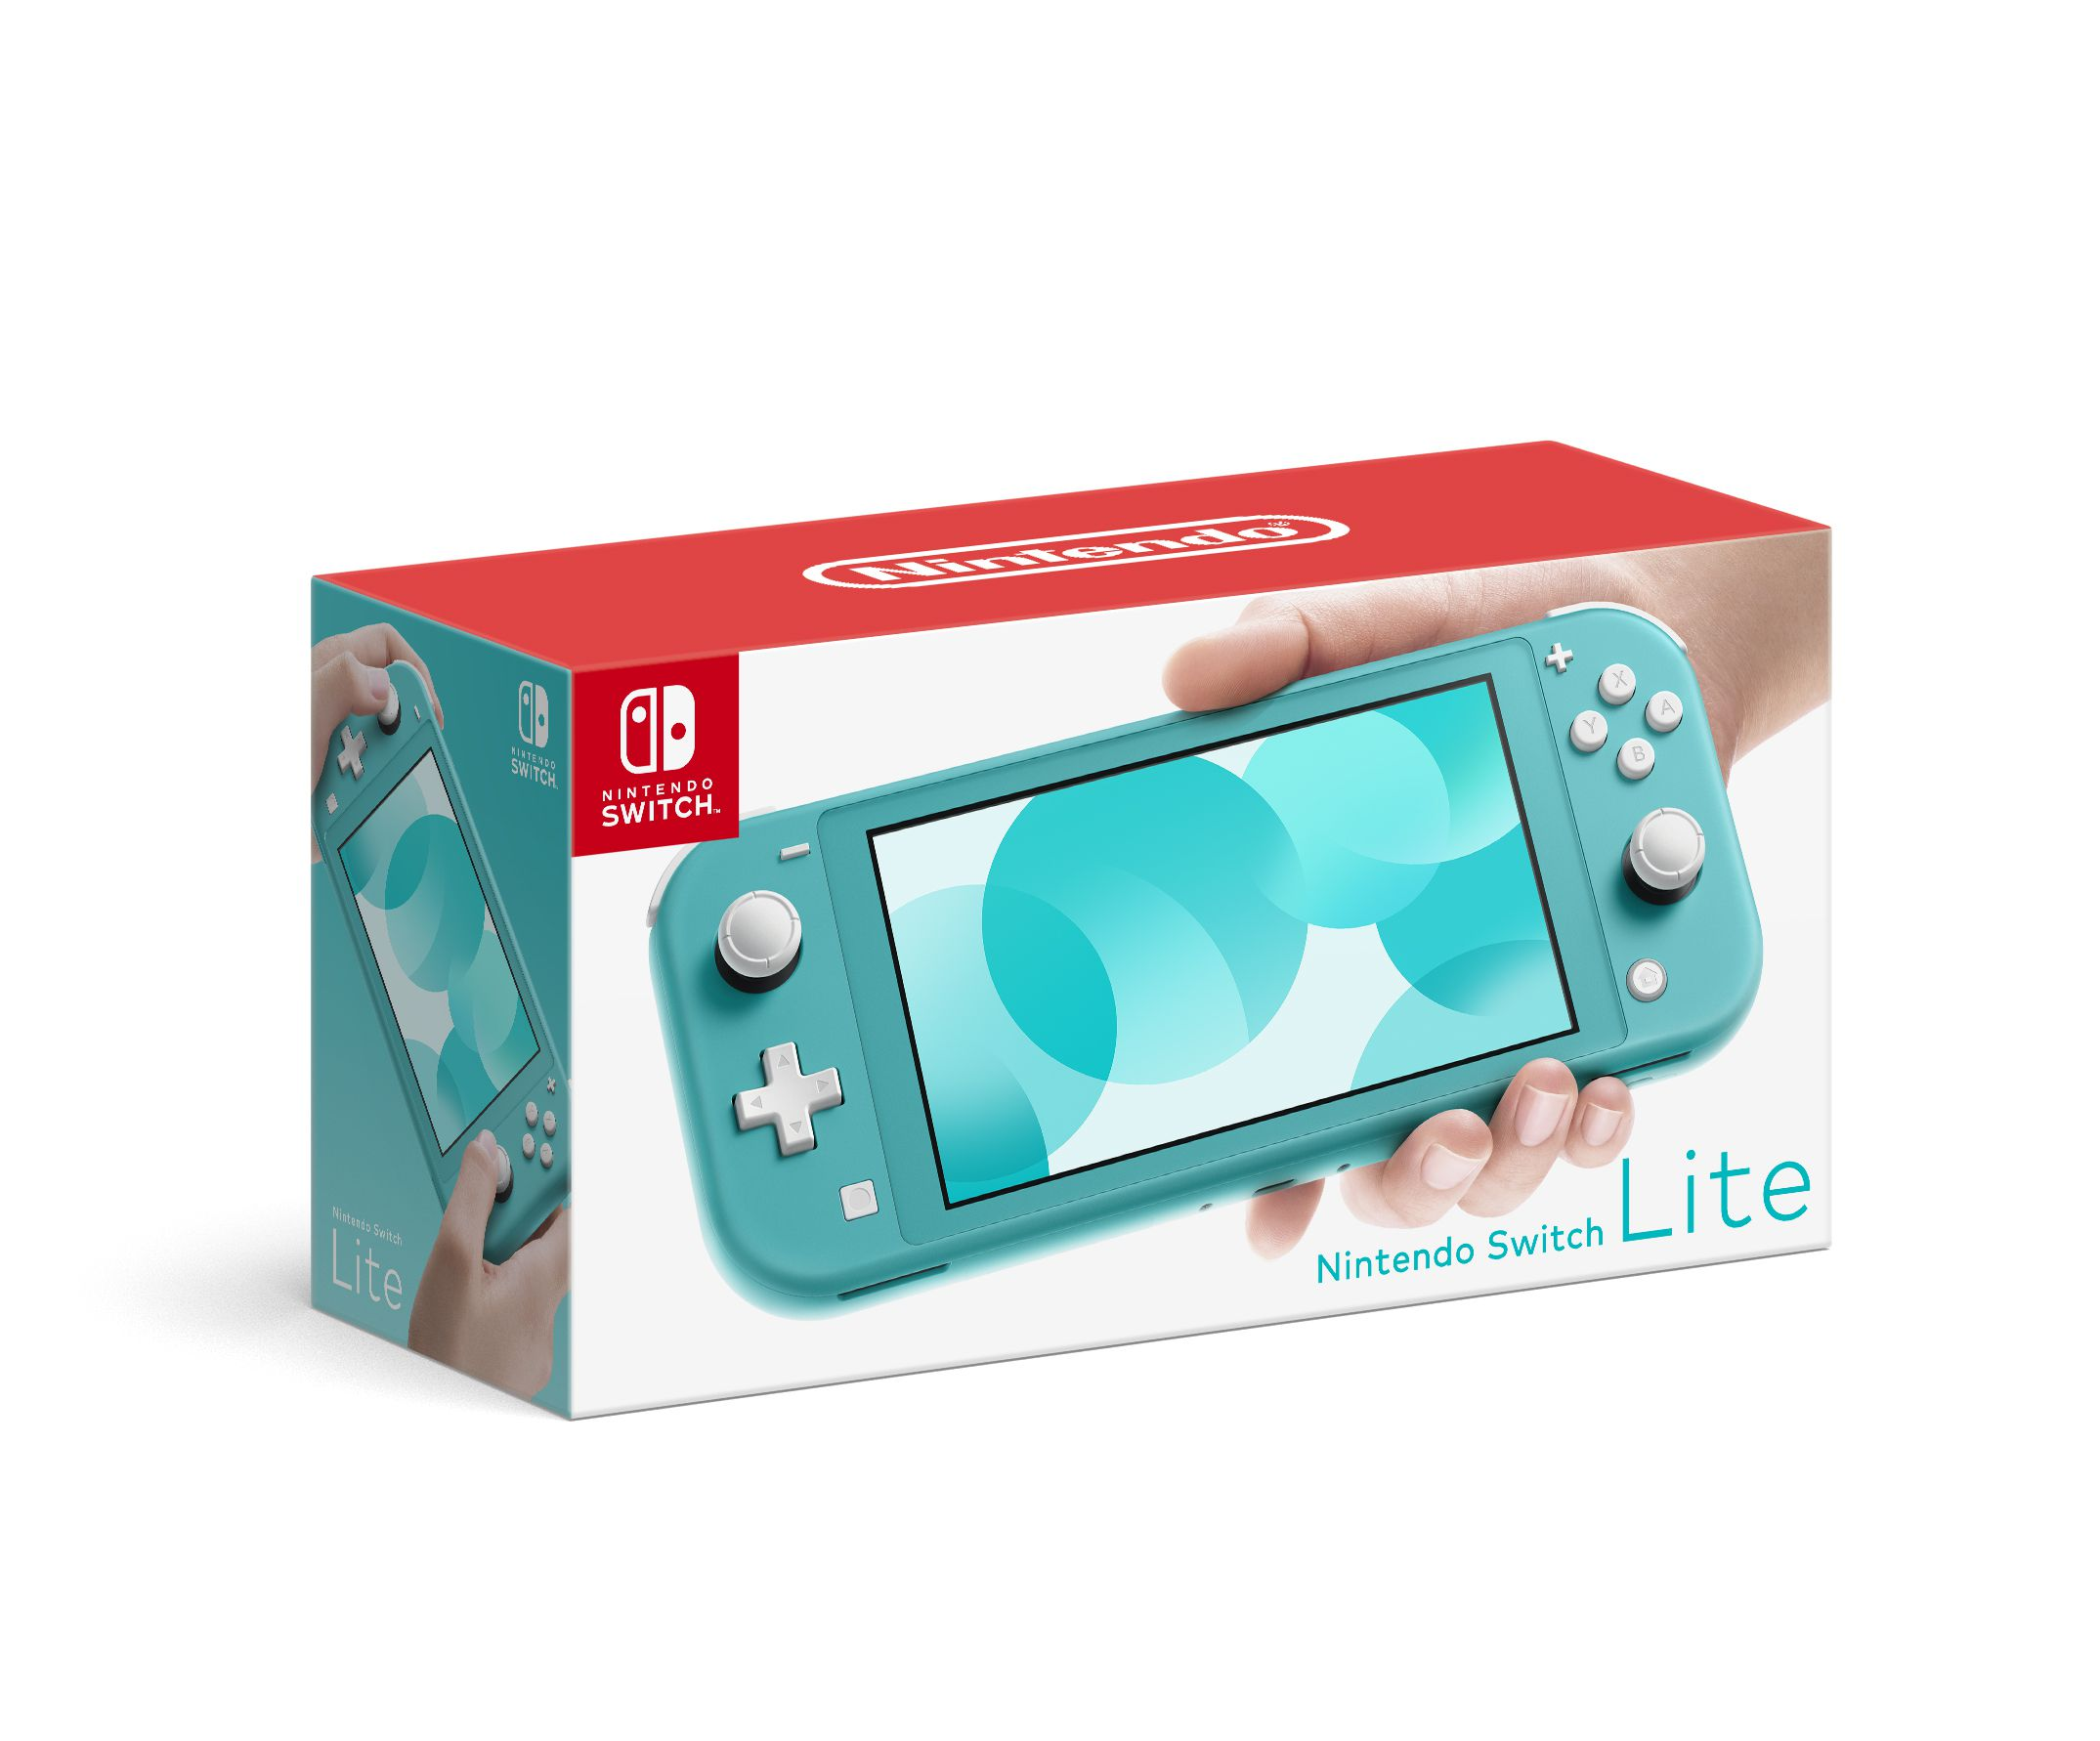 Nintendo S New Switch Lite Is An Almost Perfect Gaming System That